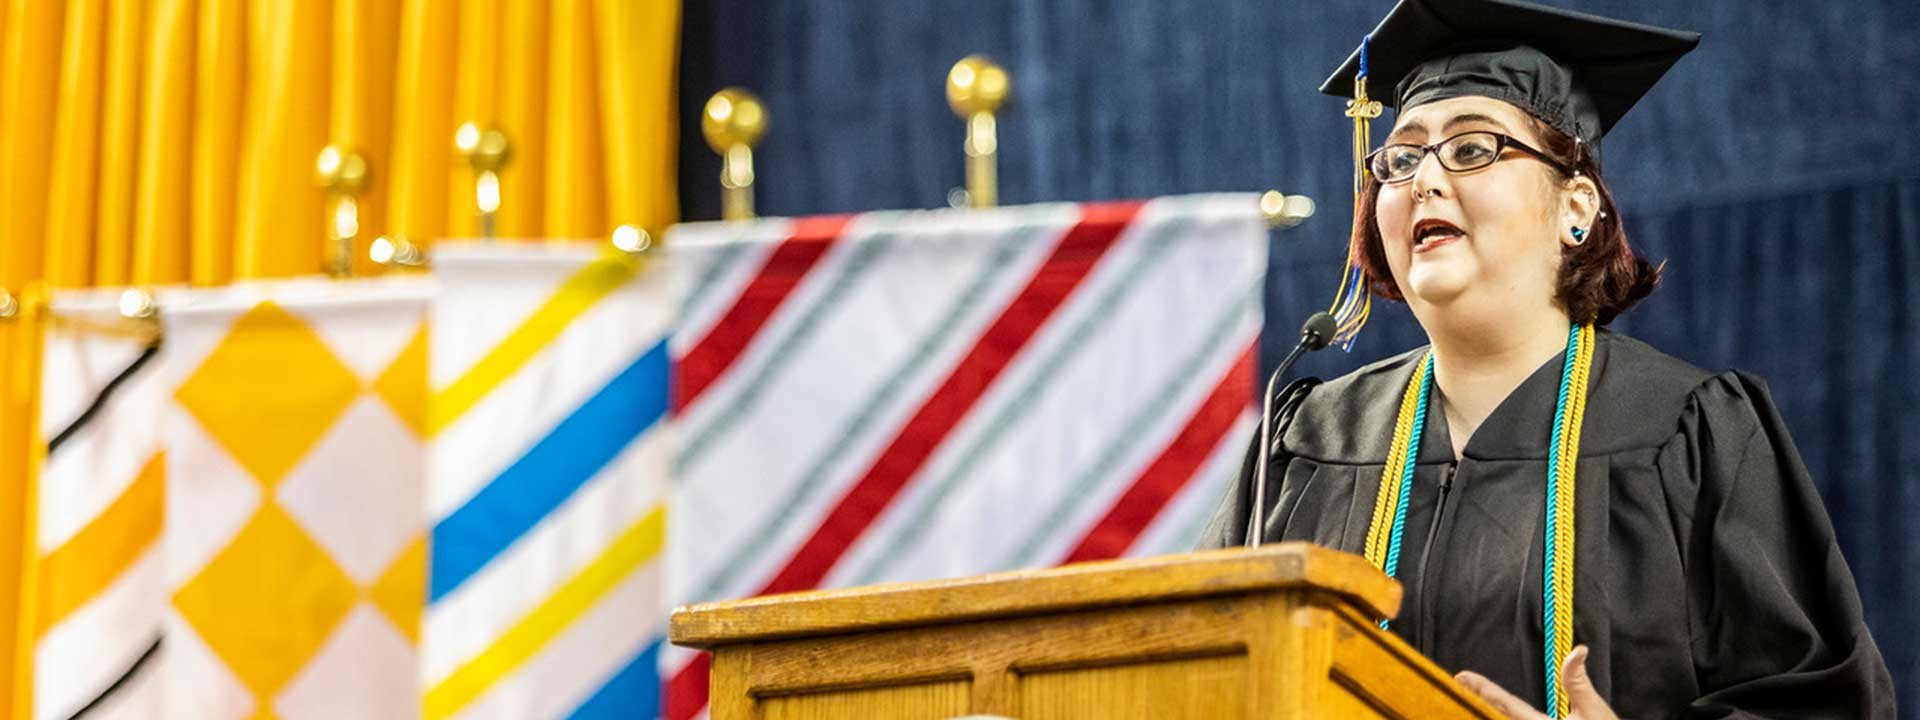 The 2019 student speaker gives their commencement address at the Carson Center